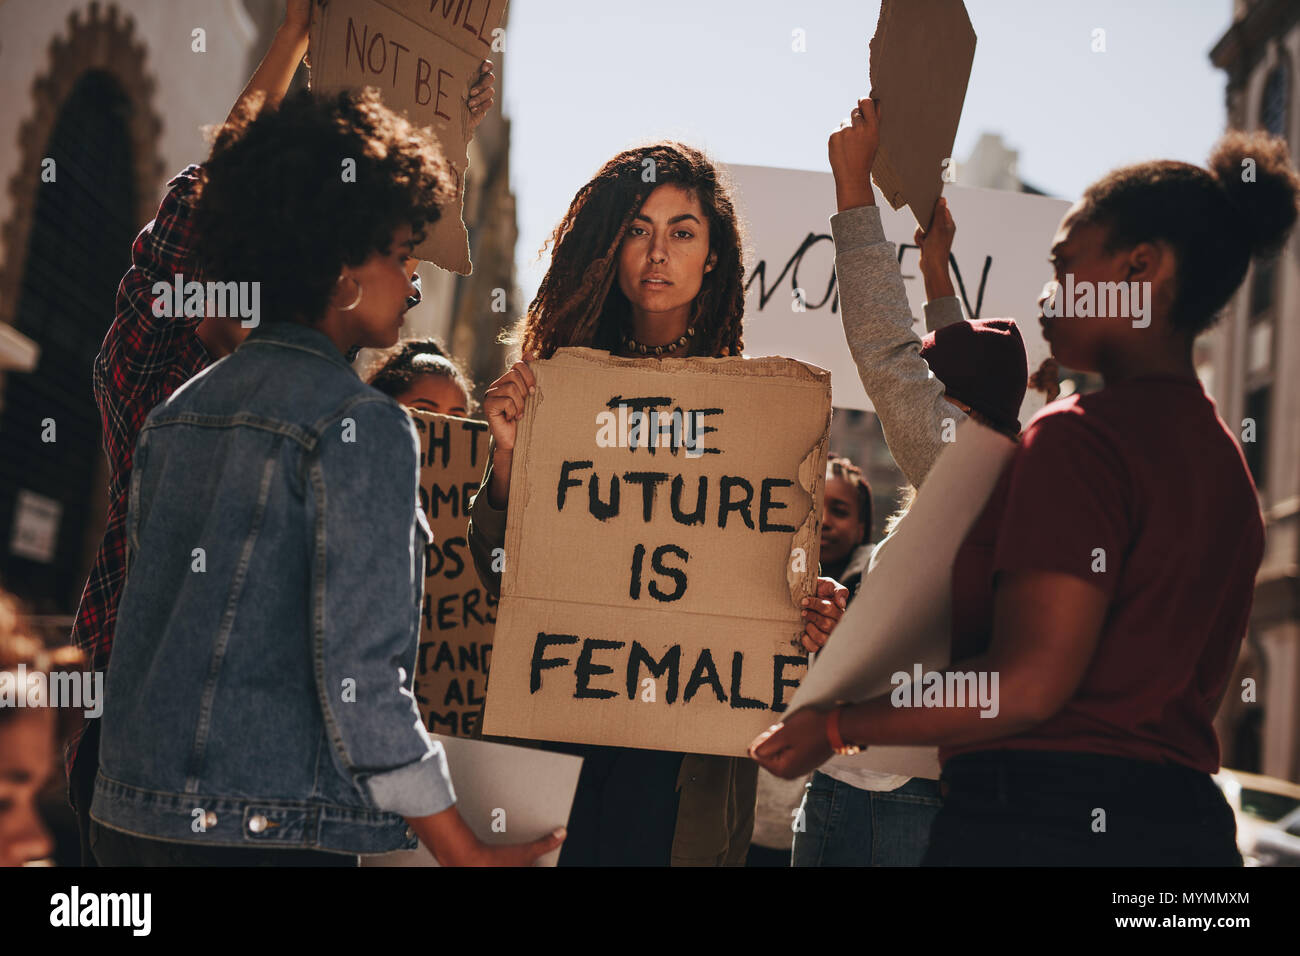 Women protesters hold up signs of the future is female. Group of women protesting outdoors for female empowerment. - Stock Image